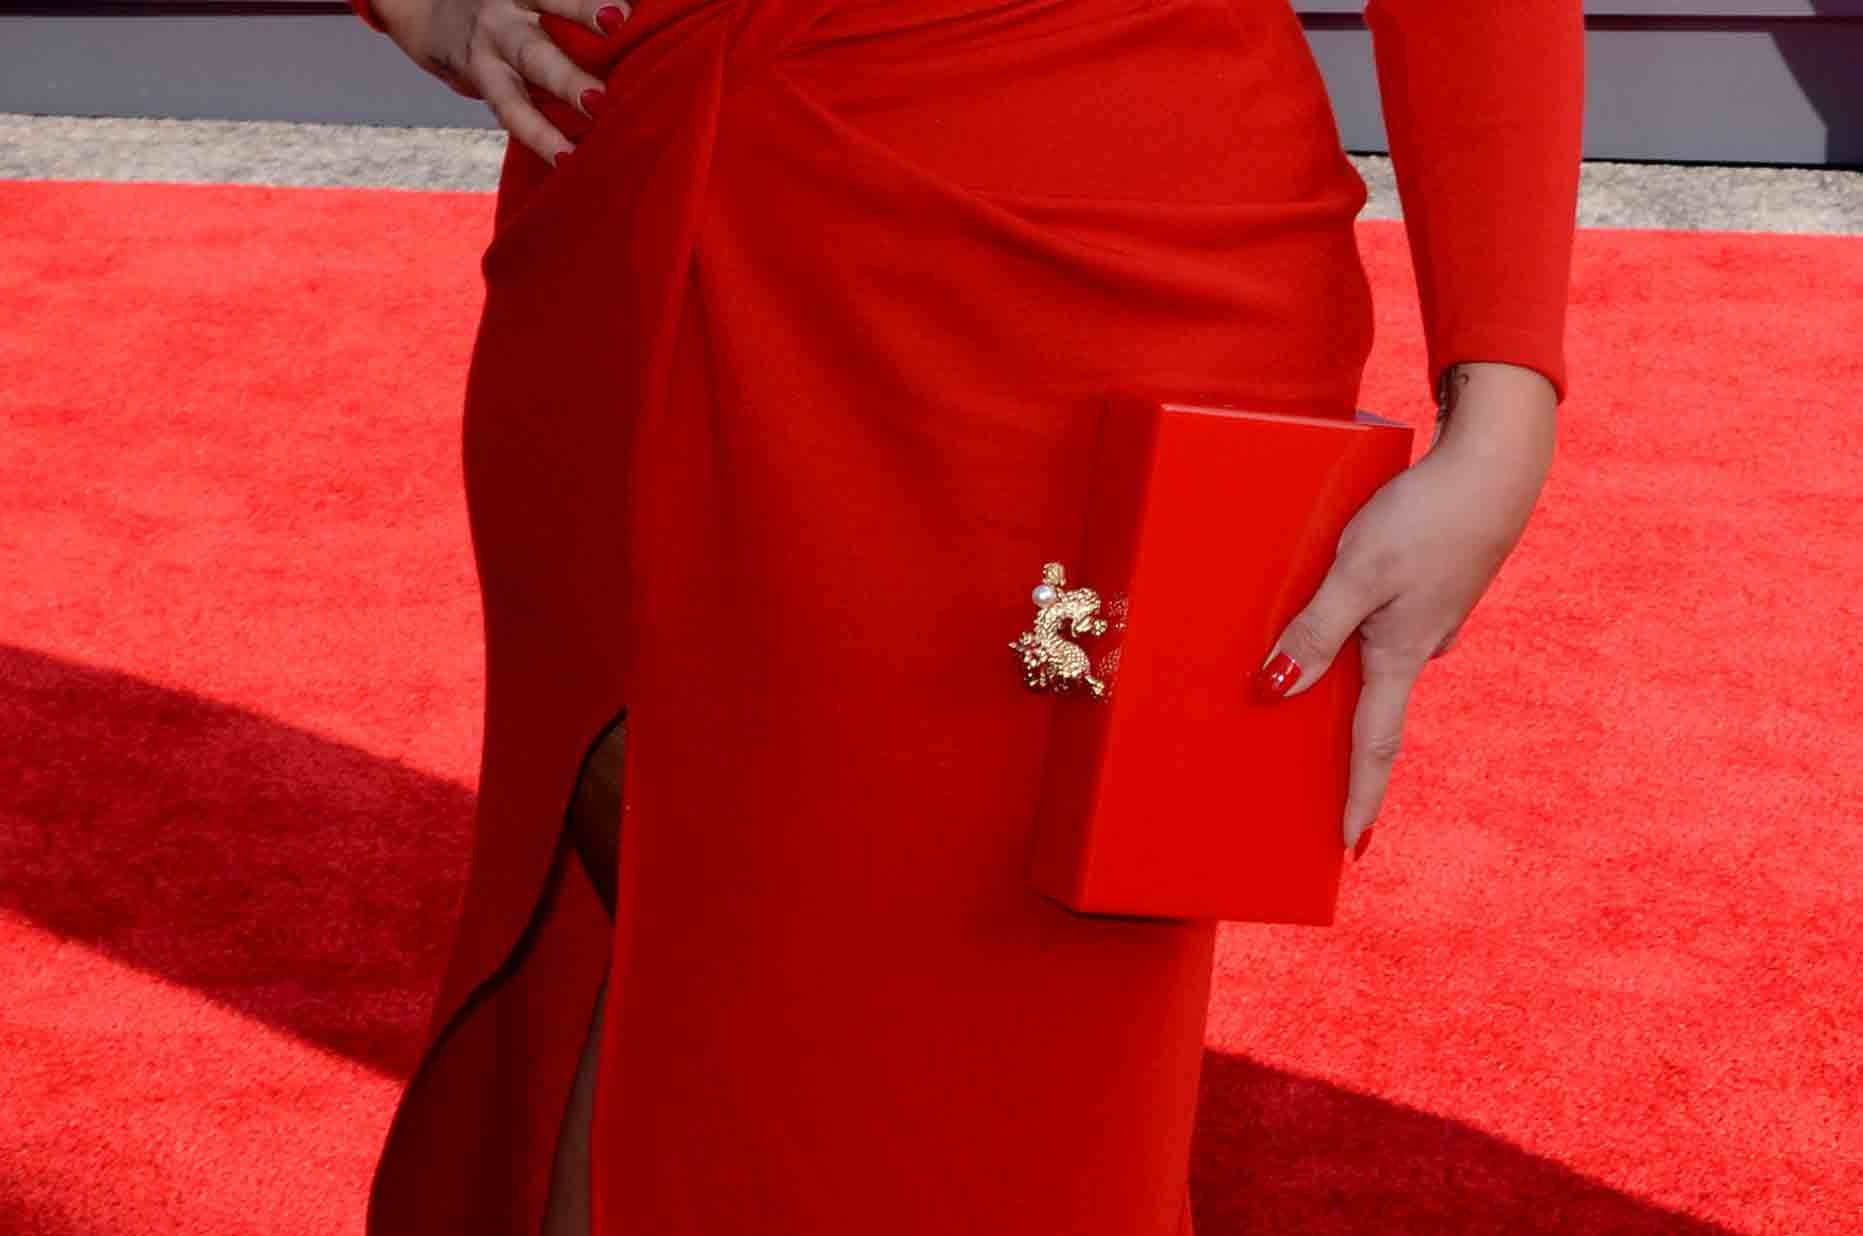 Demi Lovato's monochromatic look was complete with her ruby-red Charlotte Olympia clutch.